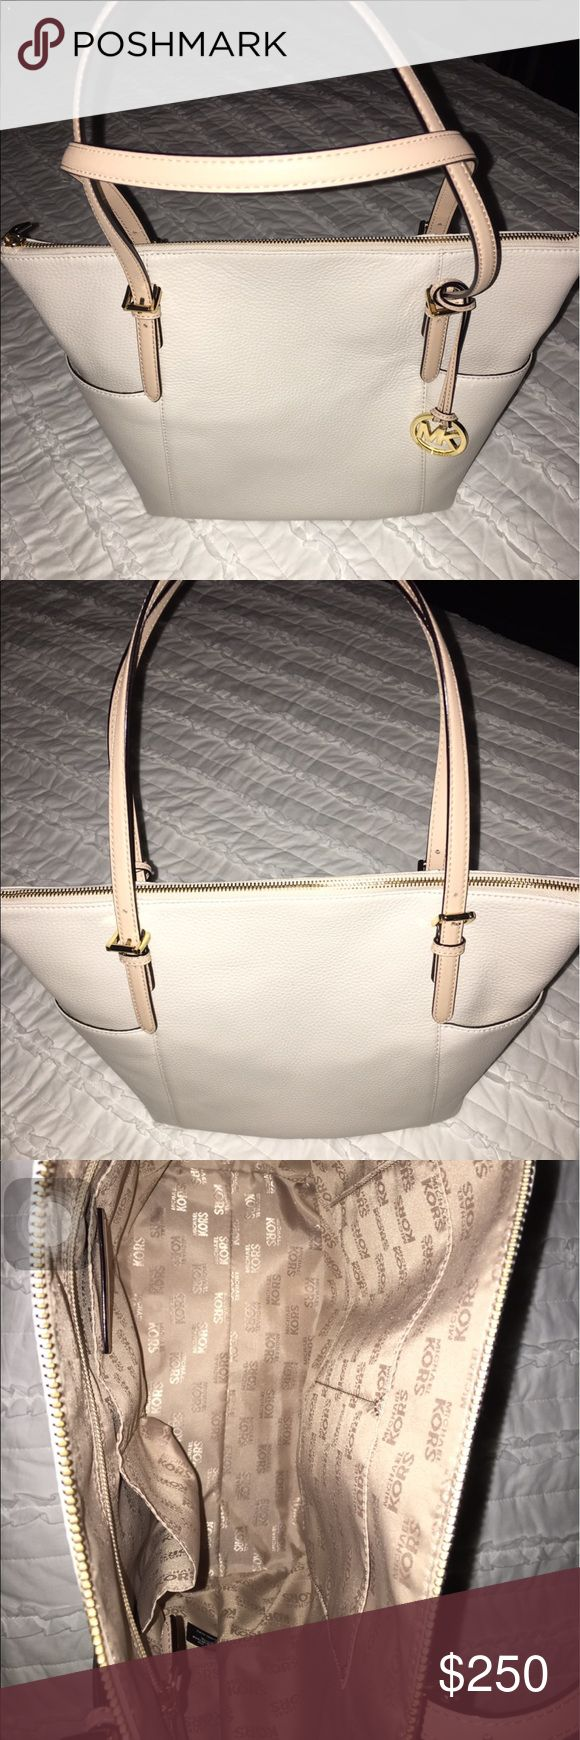 Michael Kors Purse Ivory colored Michael Kors Jet Set Large Tote bag. Not used much at all, basically new. Medium sized bag, not huge. Still stands up alone because leather has not been worn down at all. Willing to negotiate price! Michael Kors Bags Totes